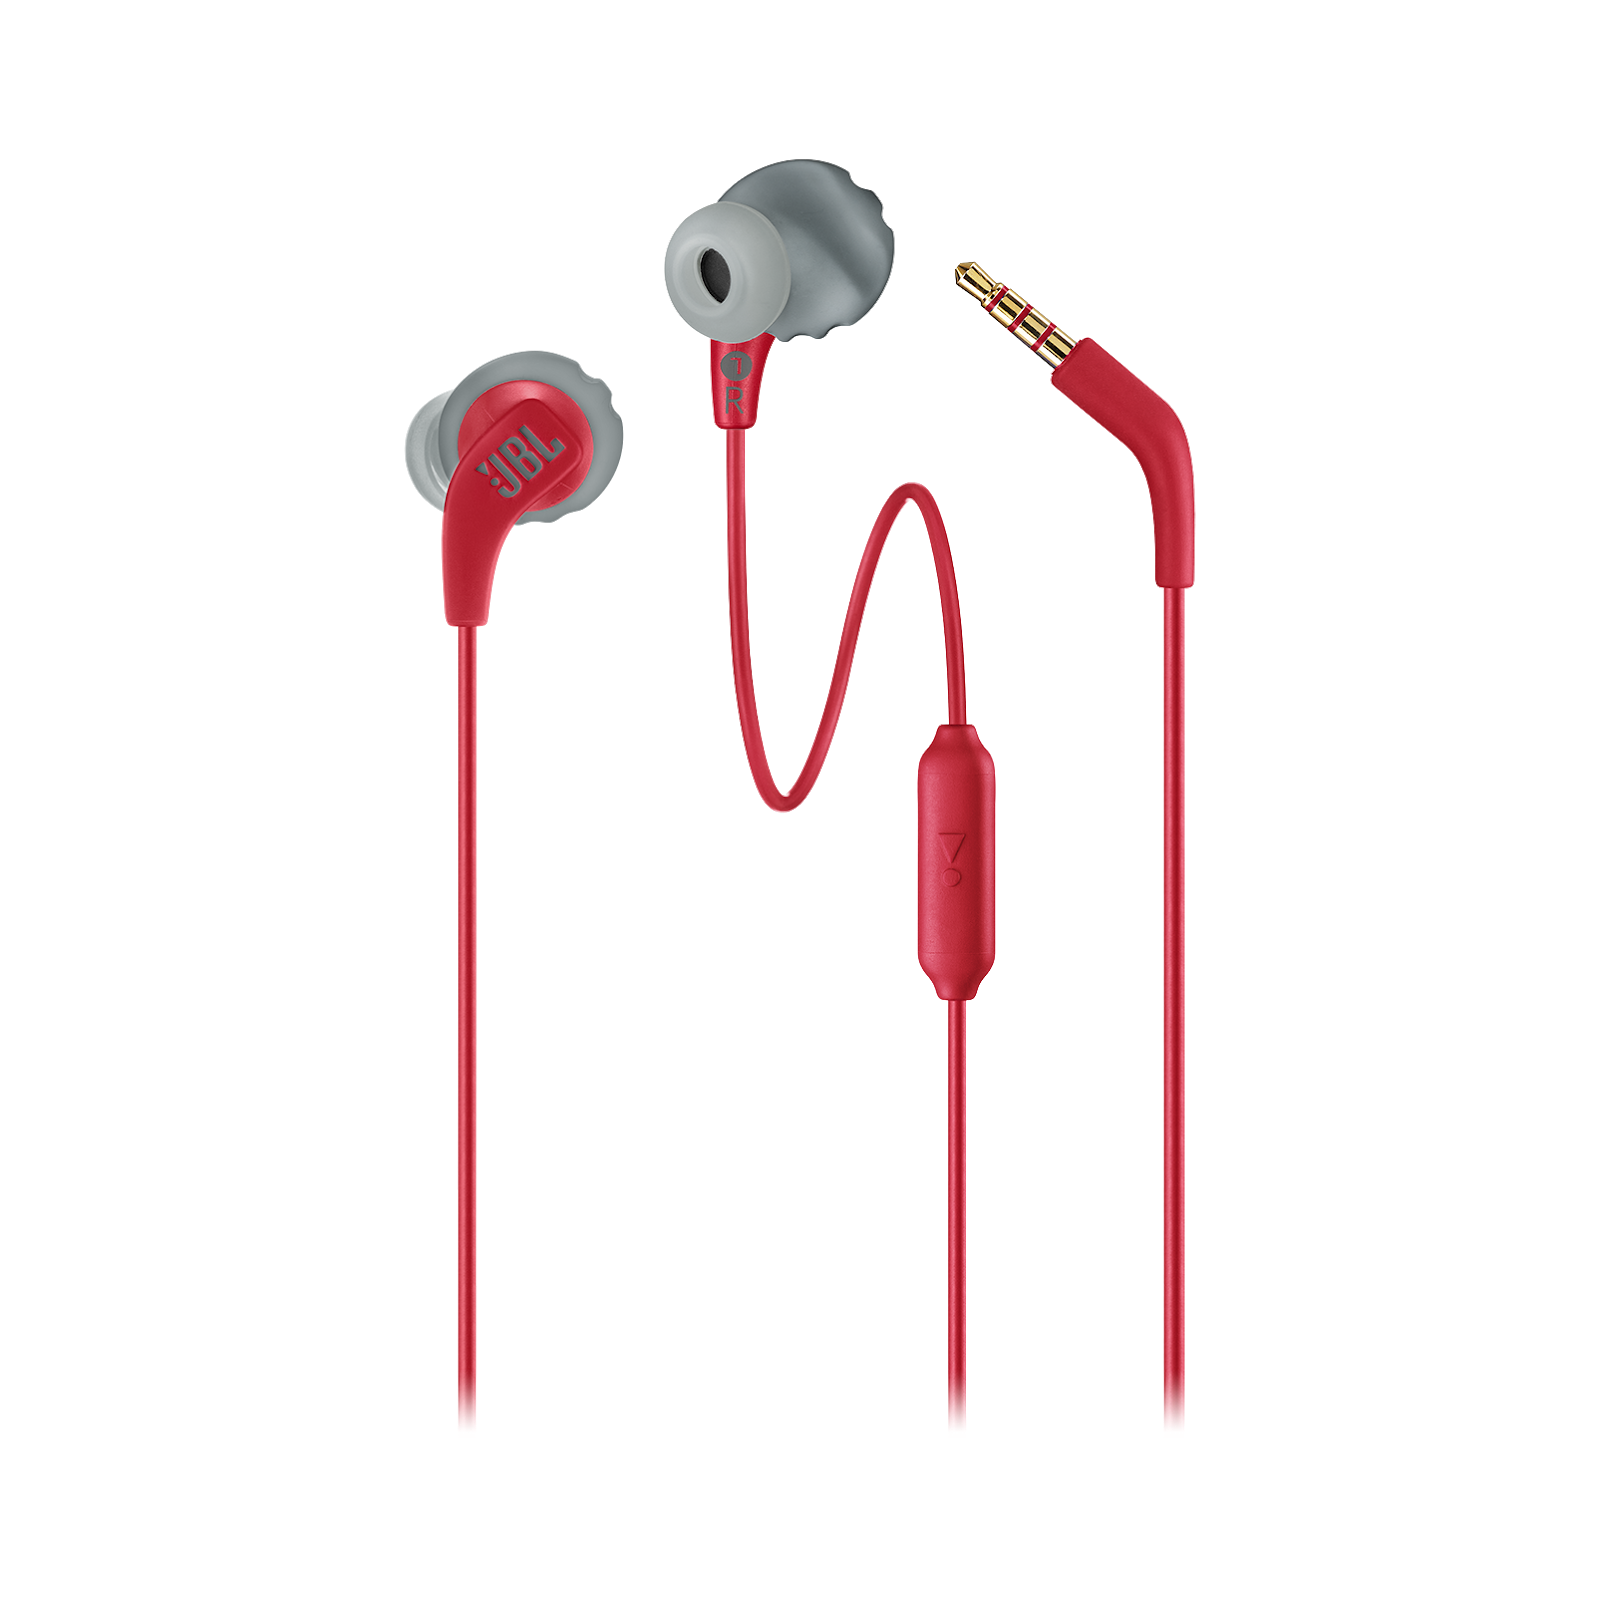 Road Trail Run: Run and Even Swim Ready Earphones from JBL